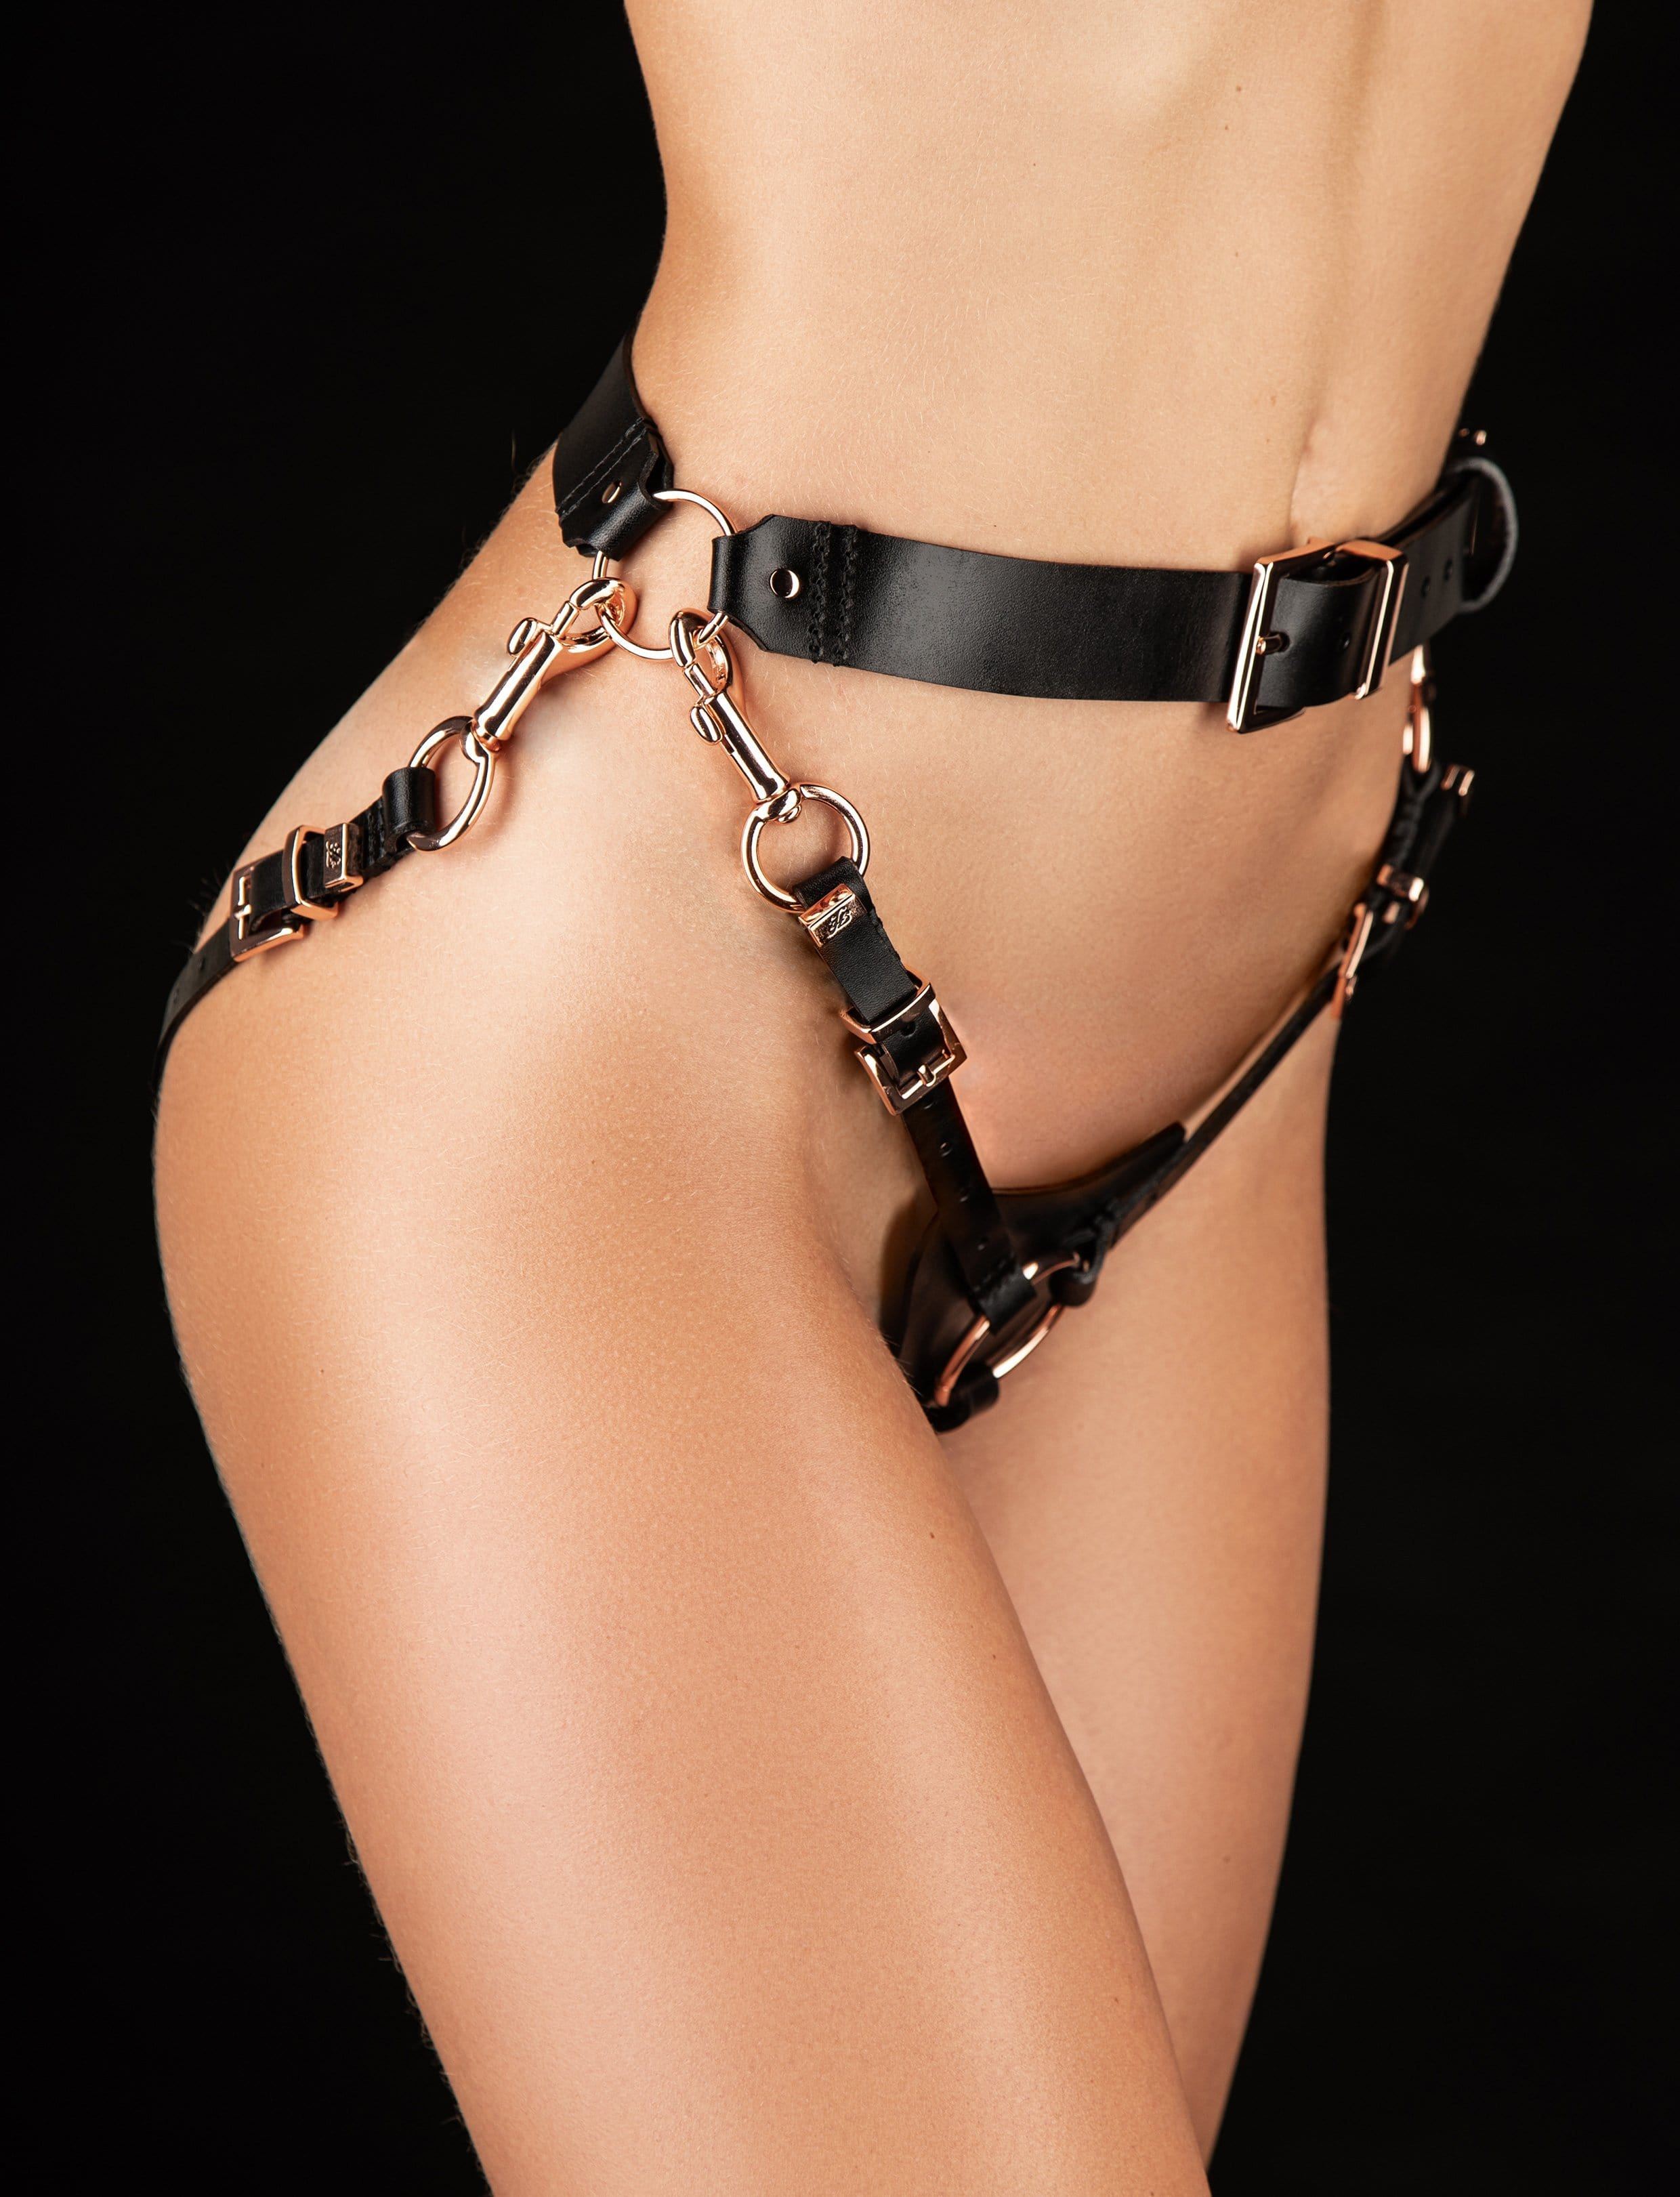 Leather Strap on - Shop Leather | Honey Birdette